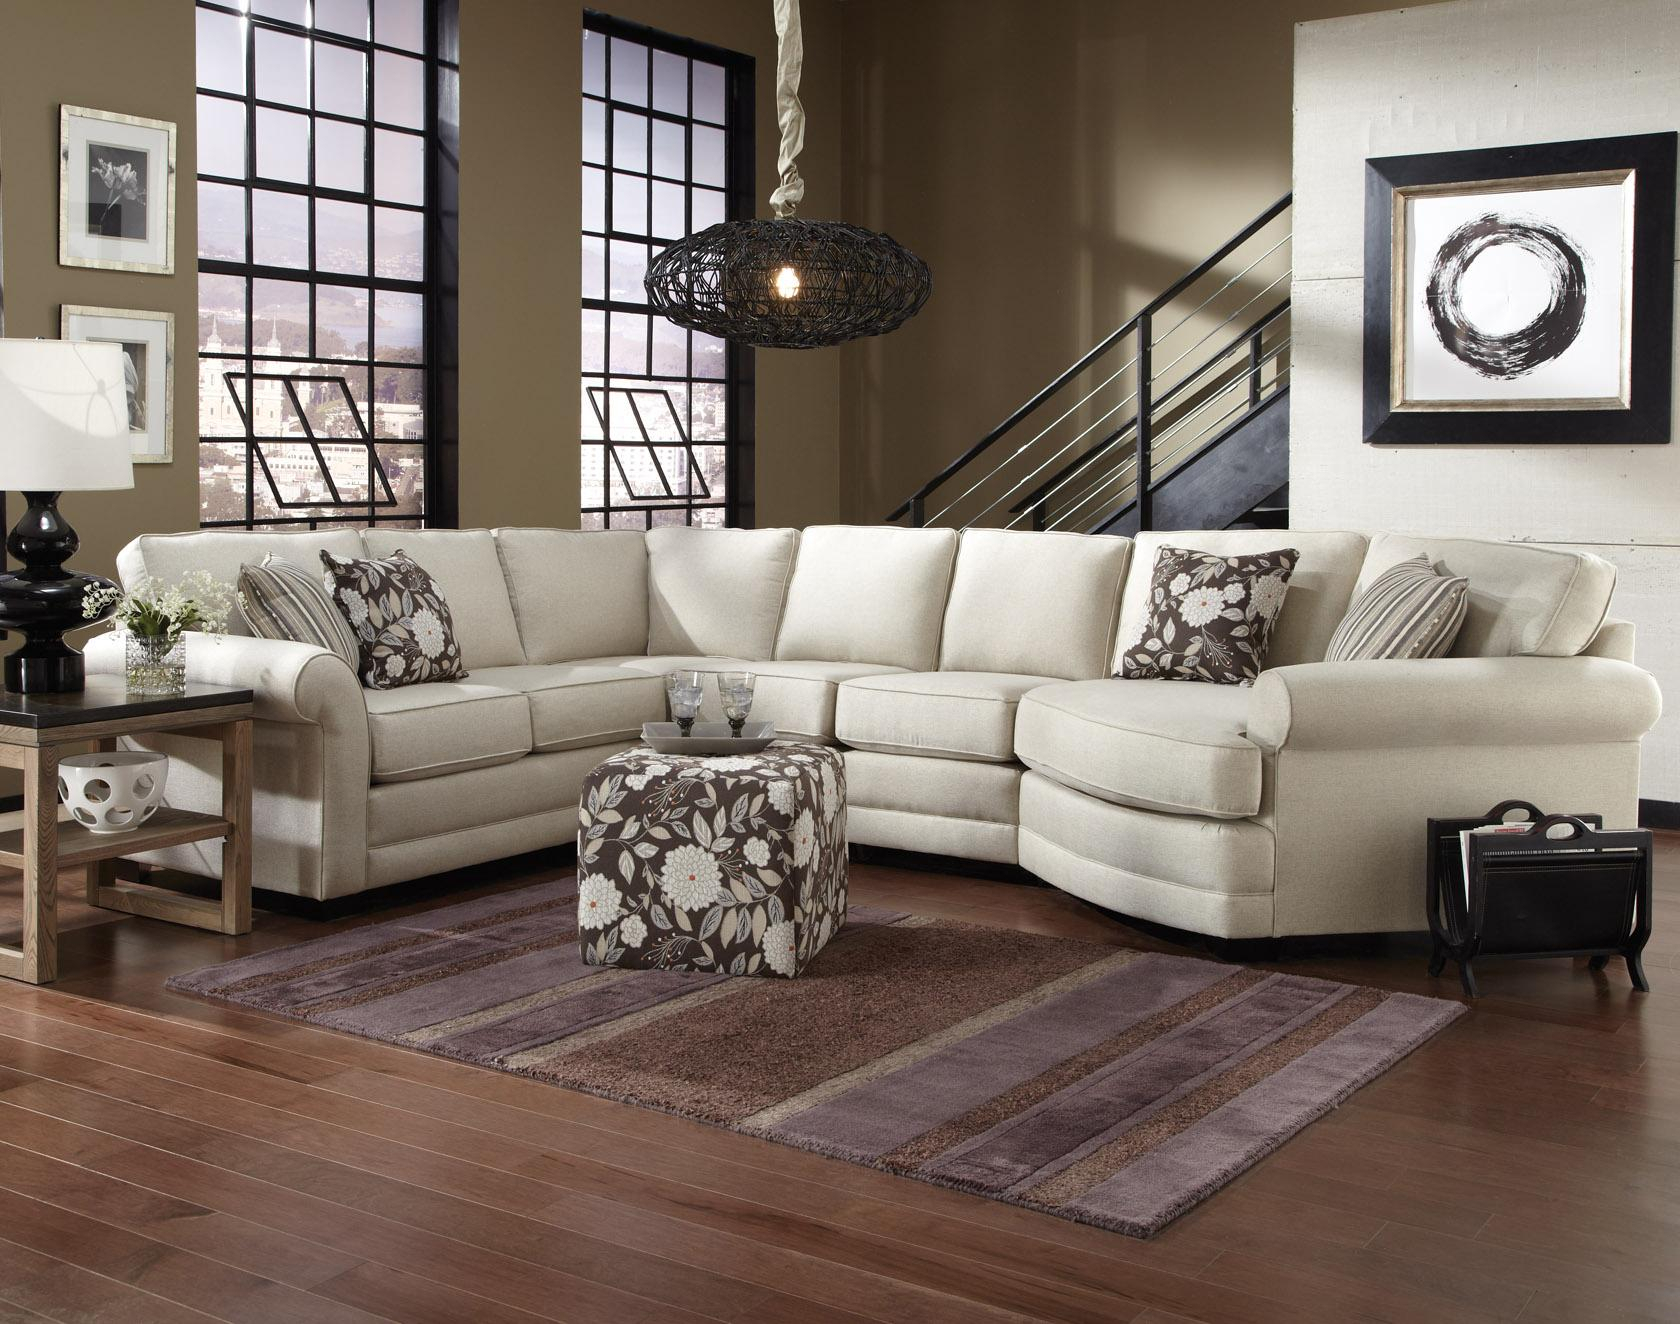 England Brantley 5 Seat Sectional Sofa With Cuddler | Dunk & Bright Within Landry Sofa Chairs (View 17 of 25)